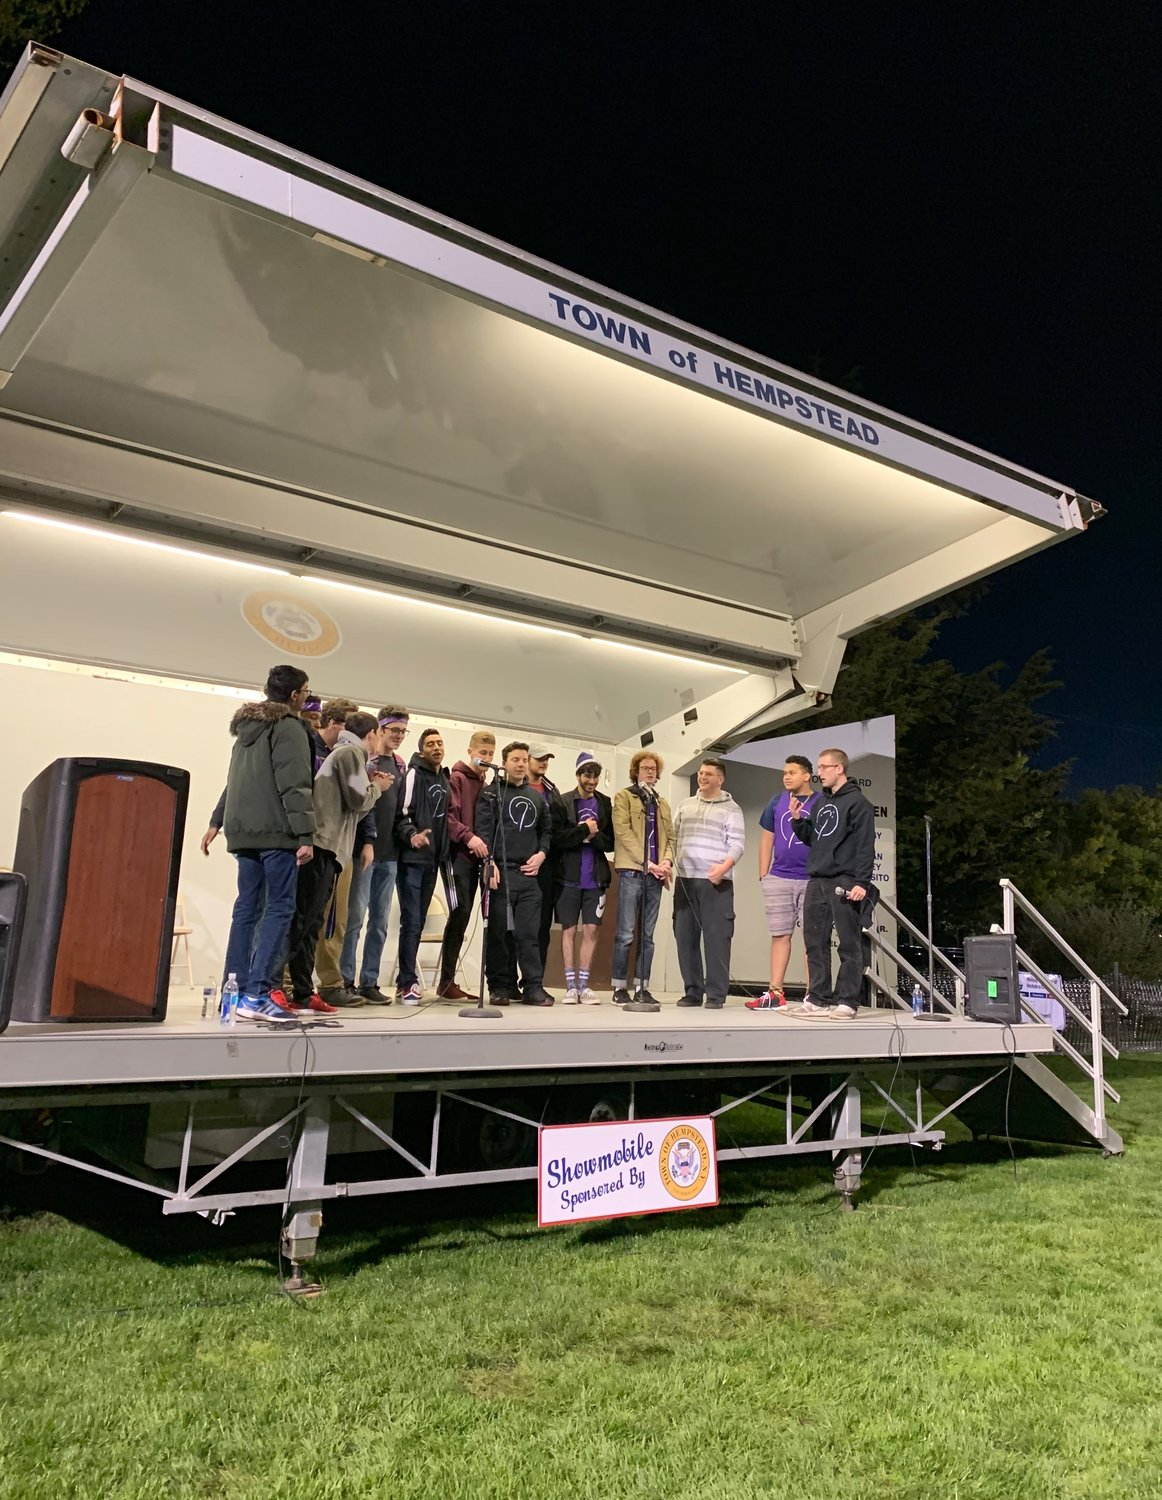 Performances by Hofstra a capella groups brought participants together at the 12th annual Hofstra University Relay for Life, sponsored by the American Cancer Society.